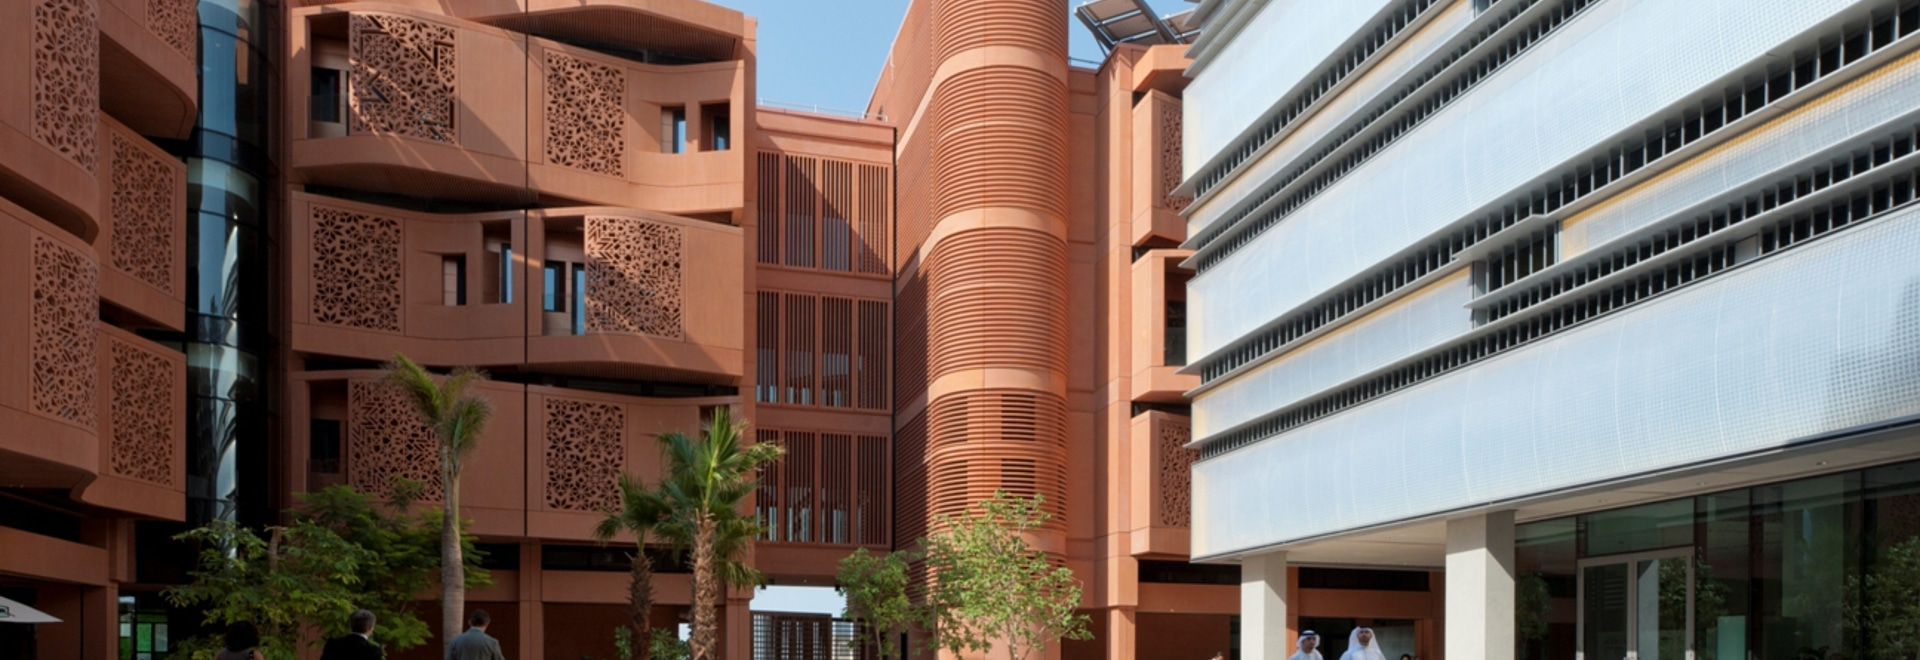 Masdar City, EAU